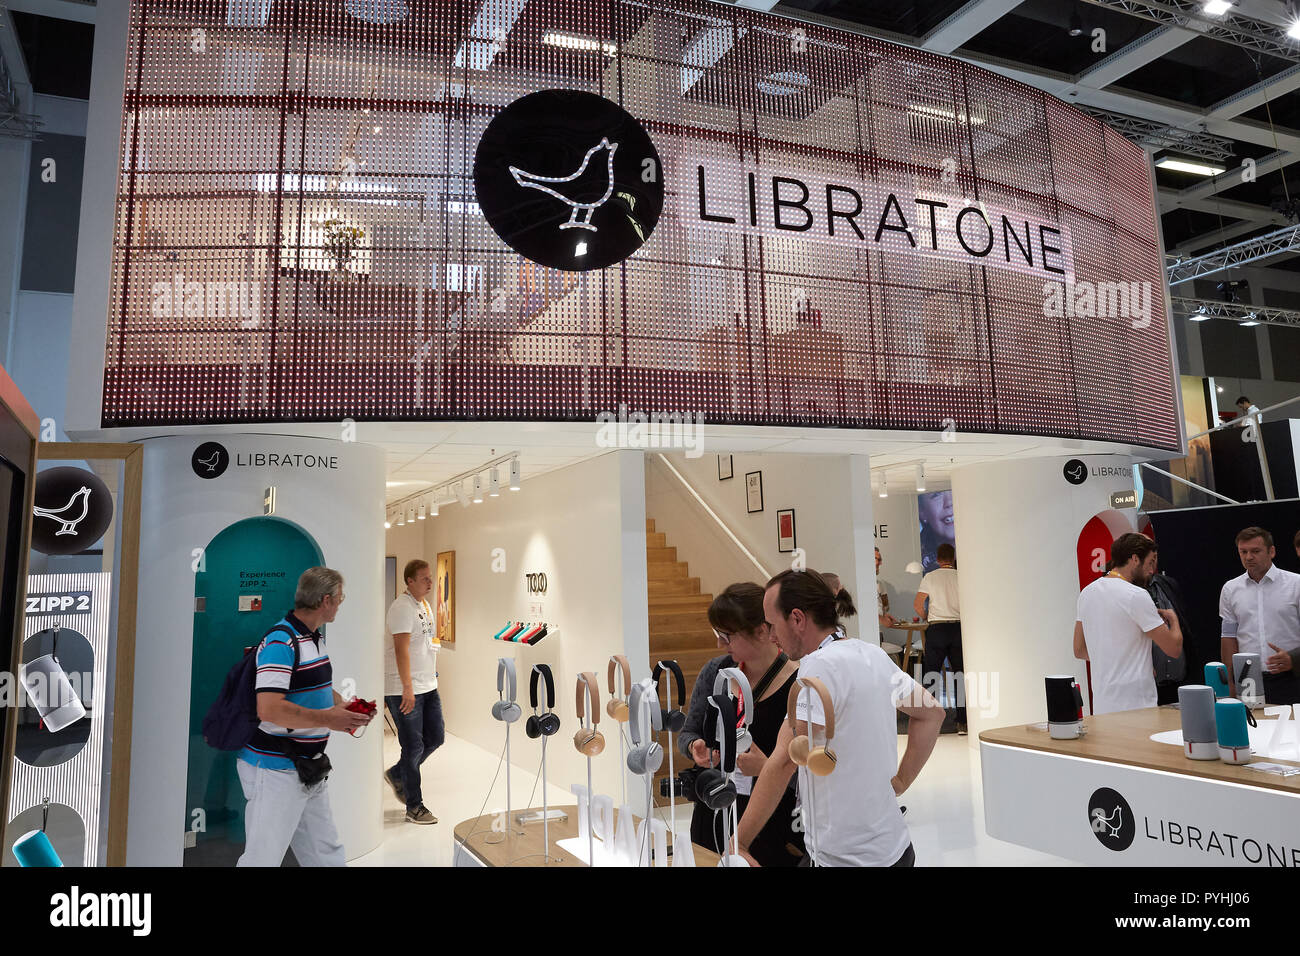 Berlin, Germany - The Danish company Libratone is presenting its innovations at IFA 2018. - Stock Image